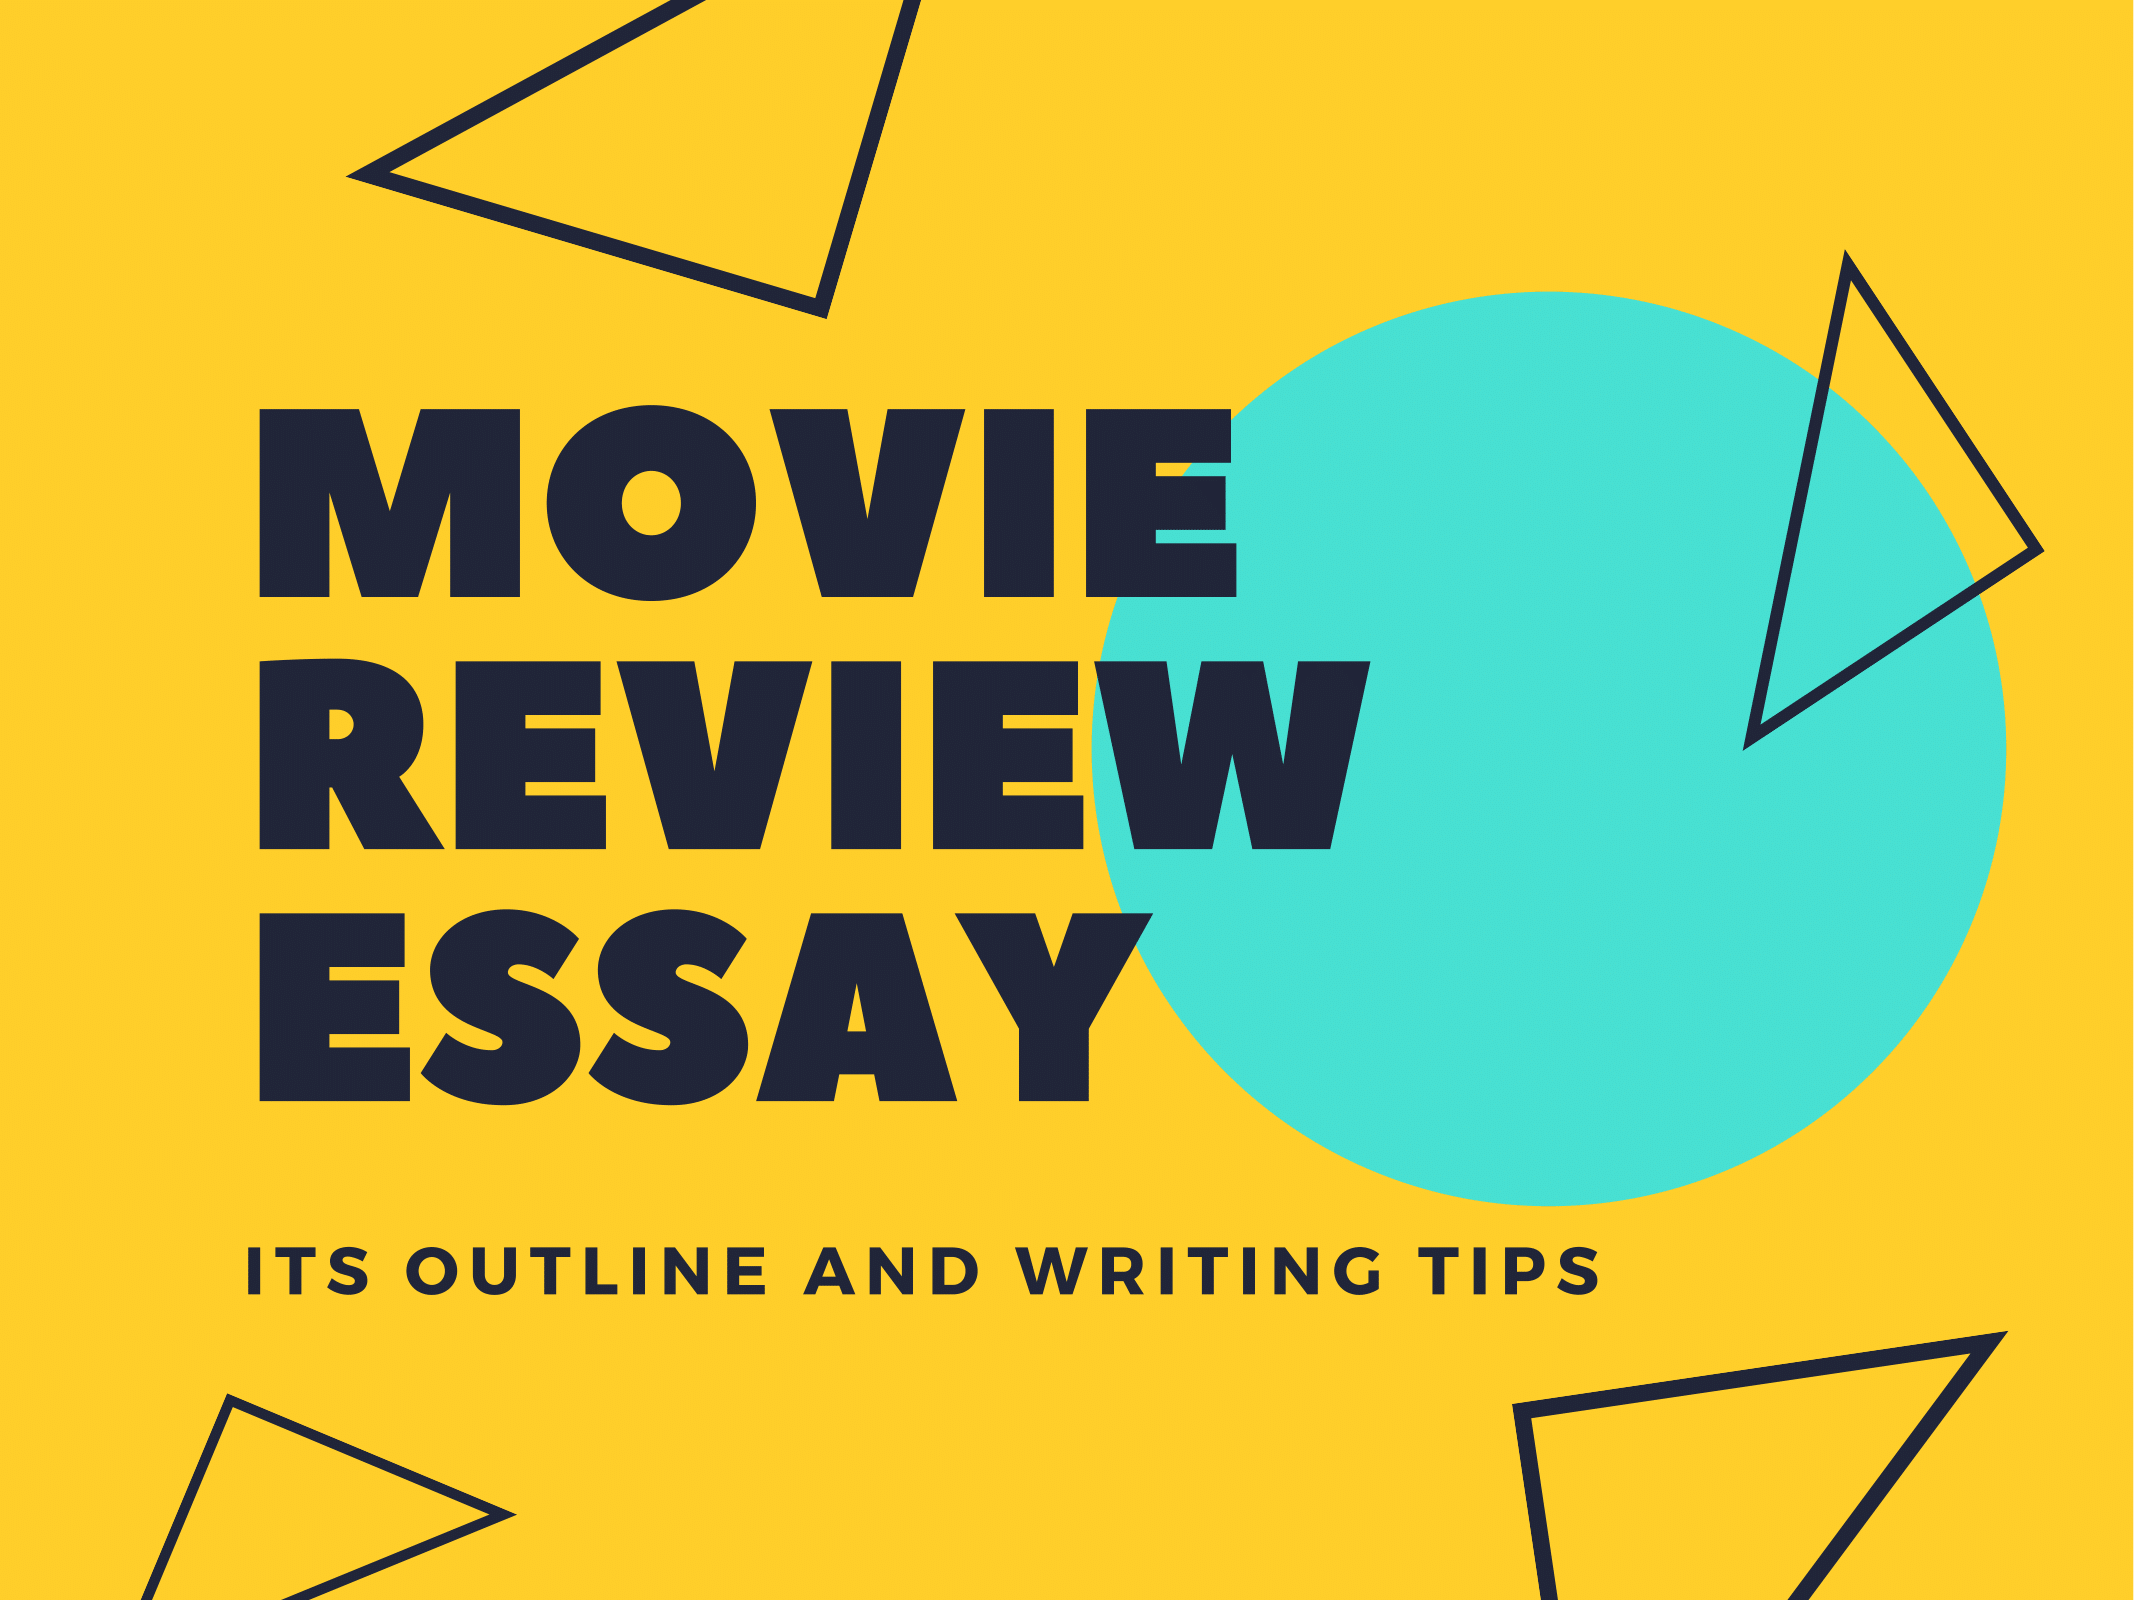 013 Essay Example Movie Guide Exceptional Review Thesis Statement Samples Full